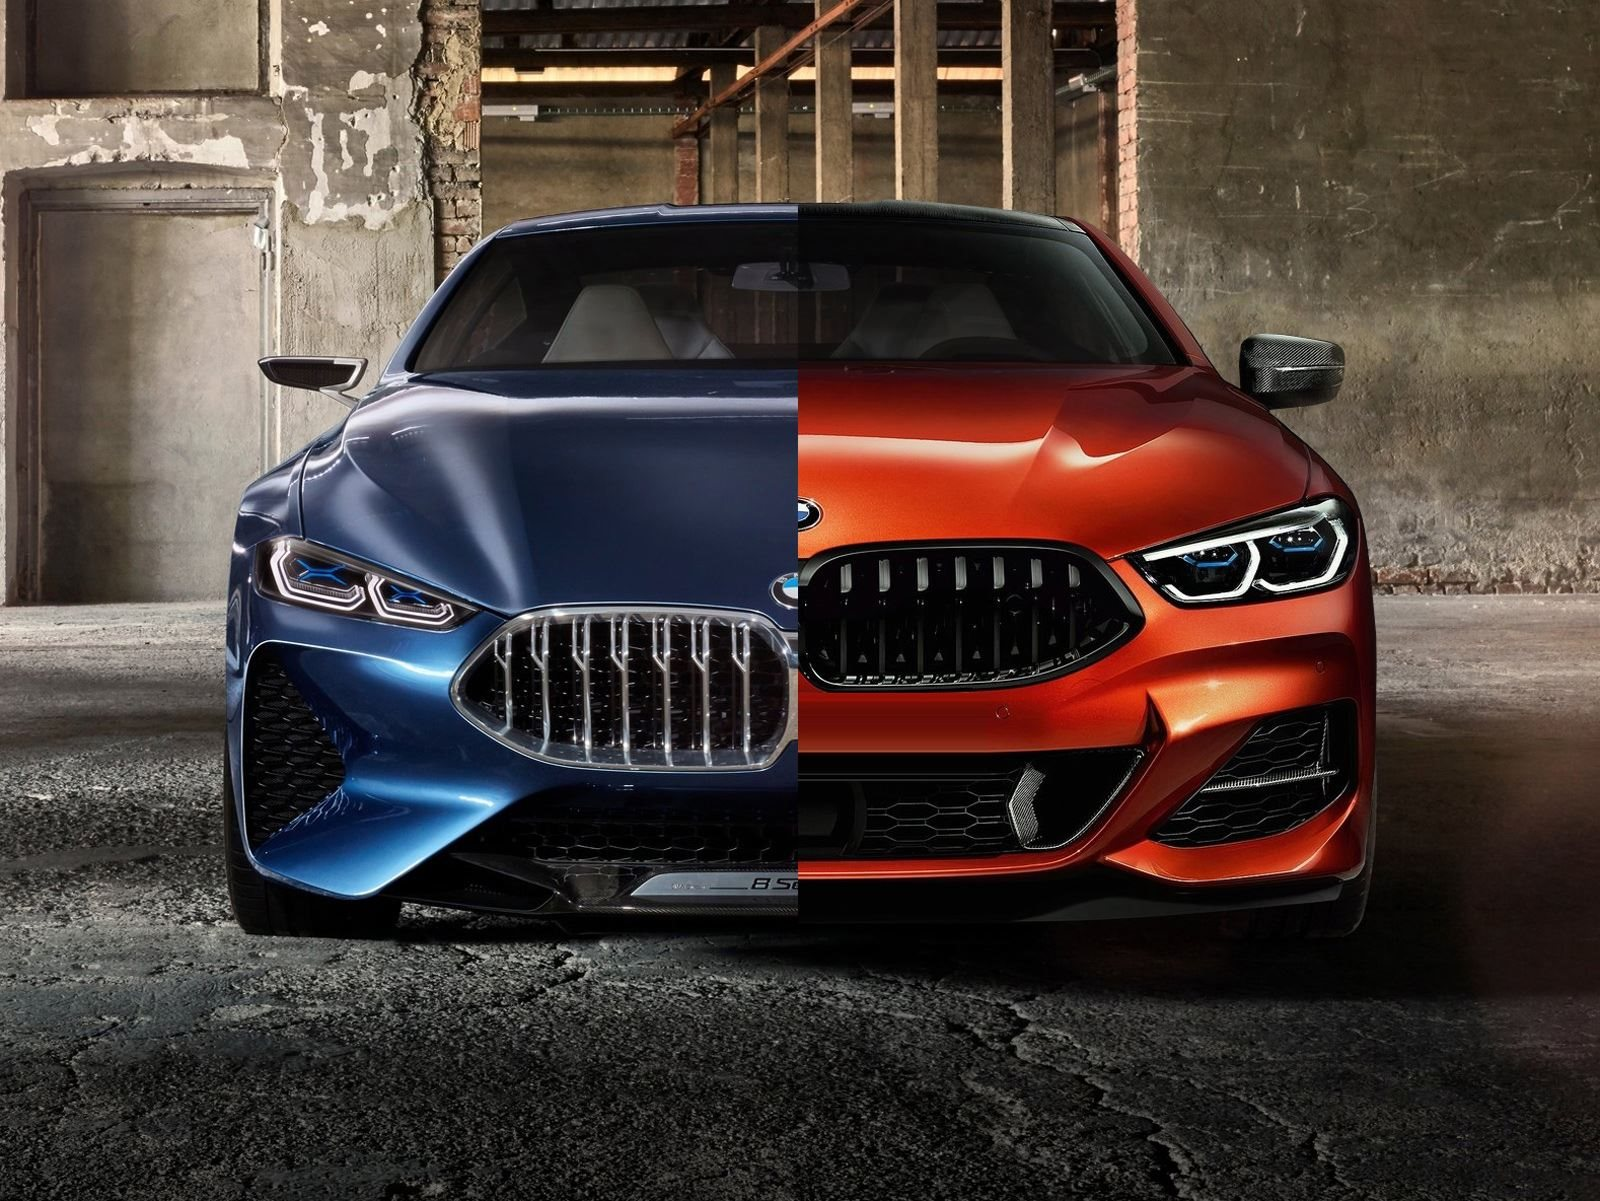 Is The New Bmw 8 Series Better Looking Than The Concept Carbuzz